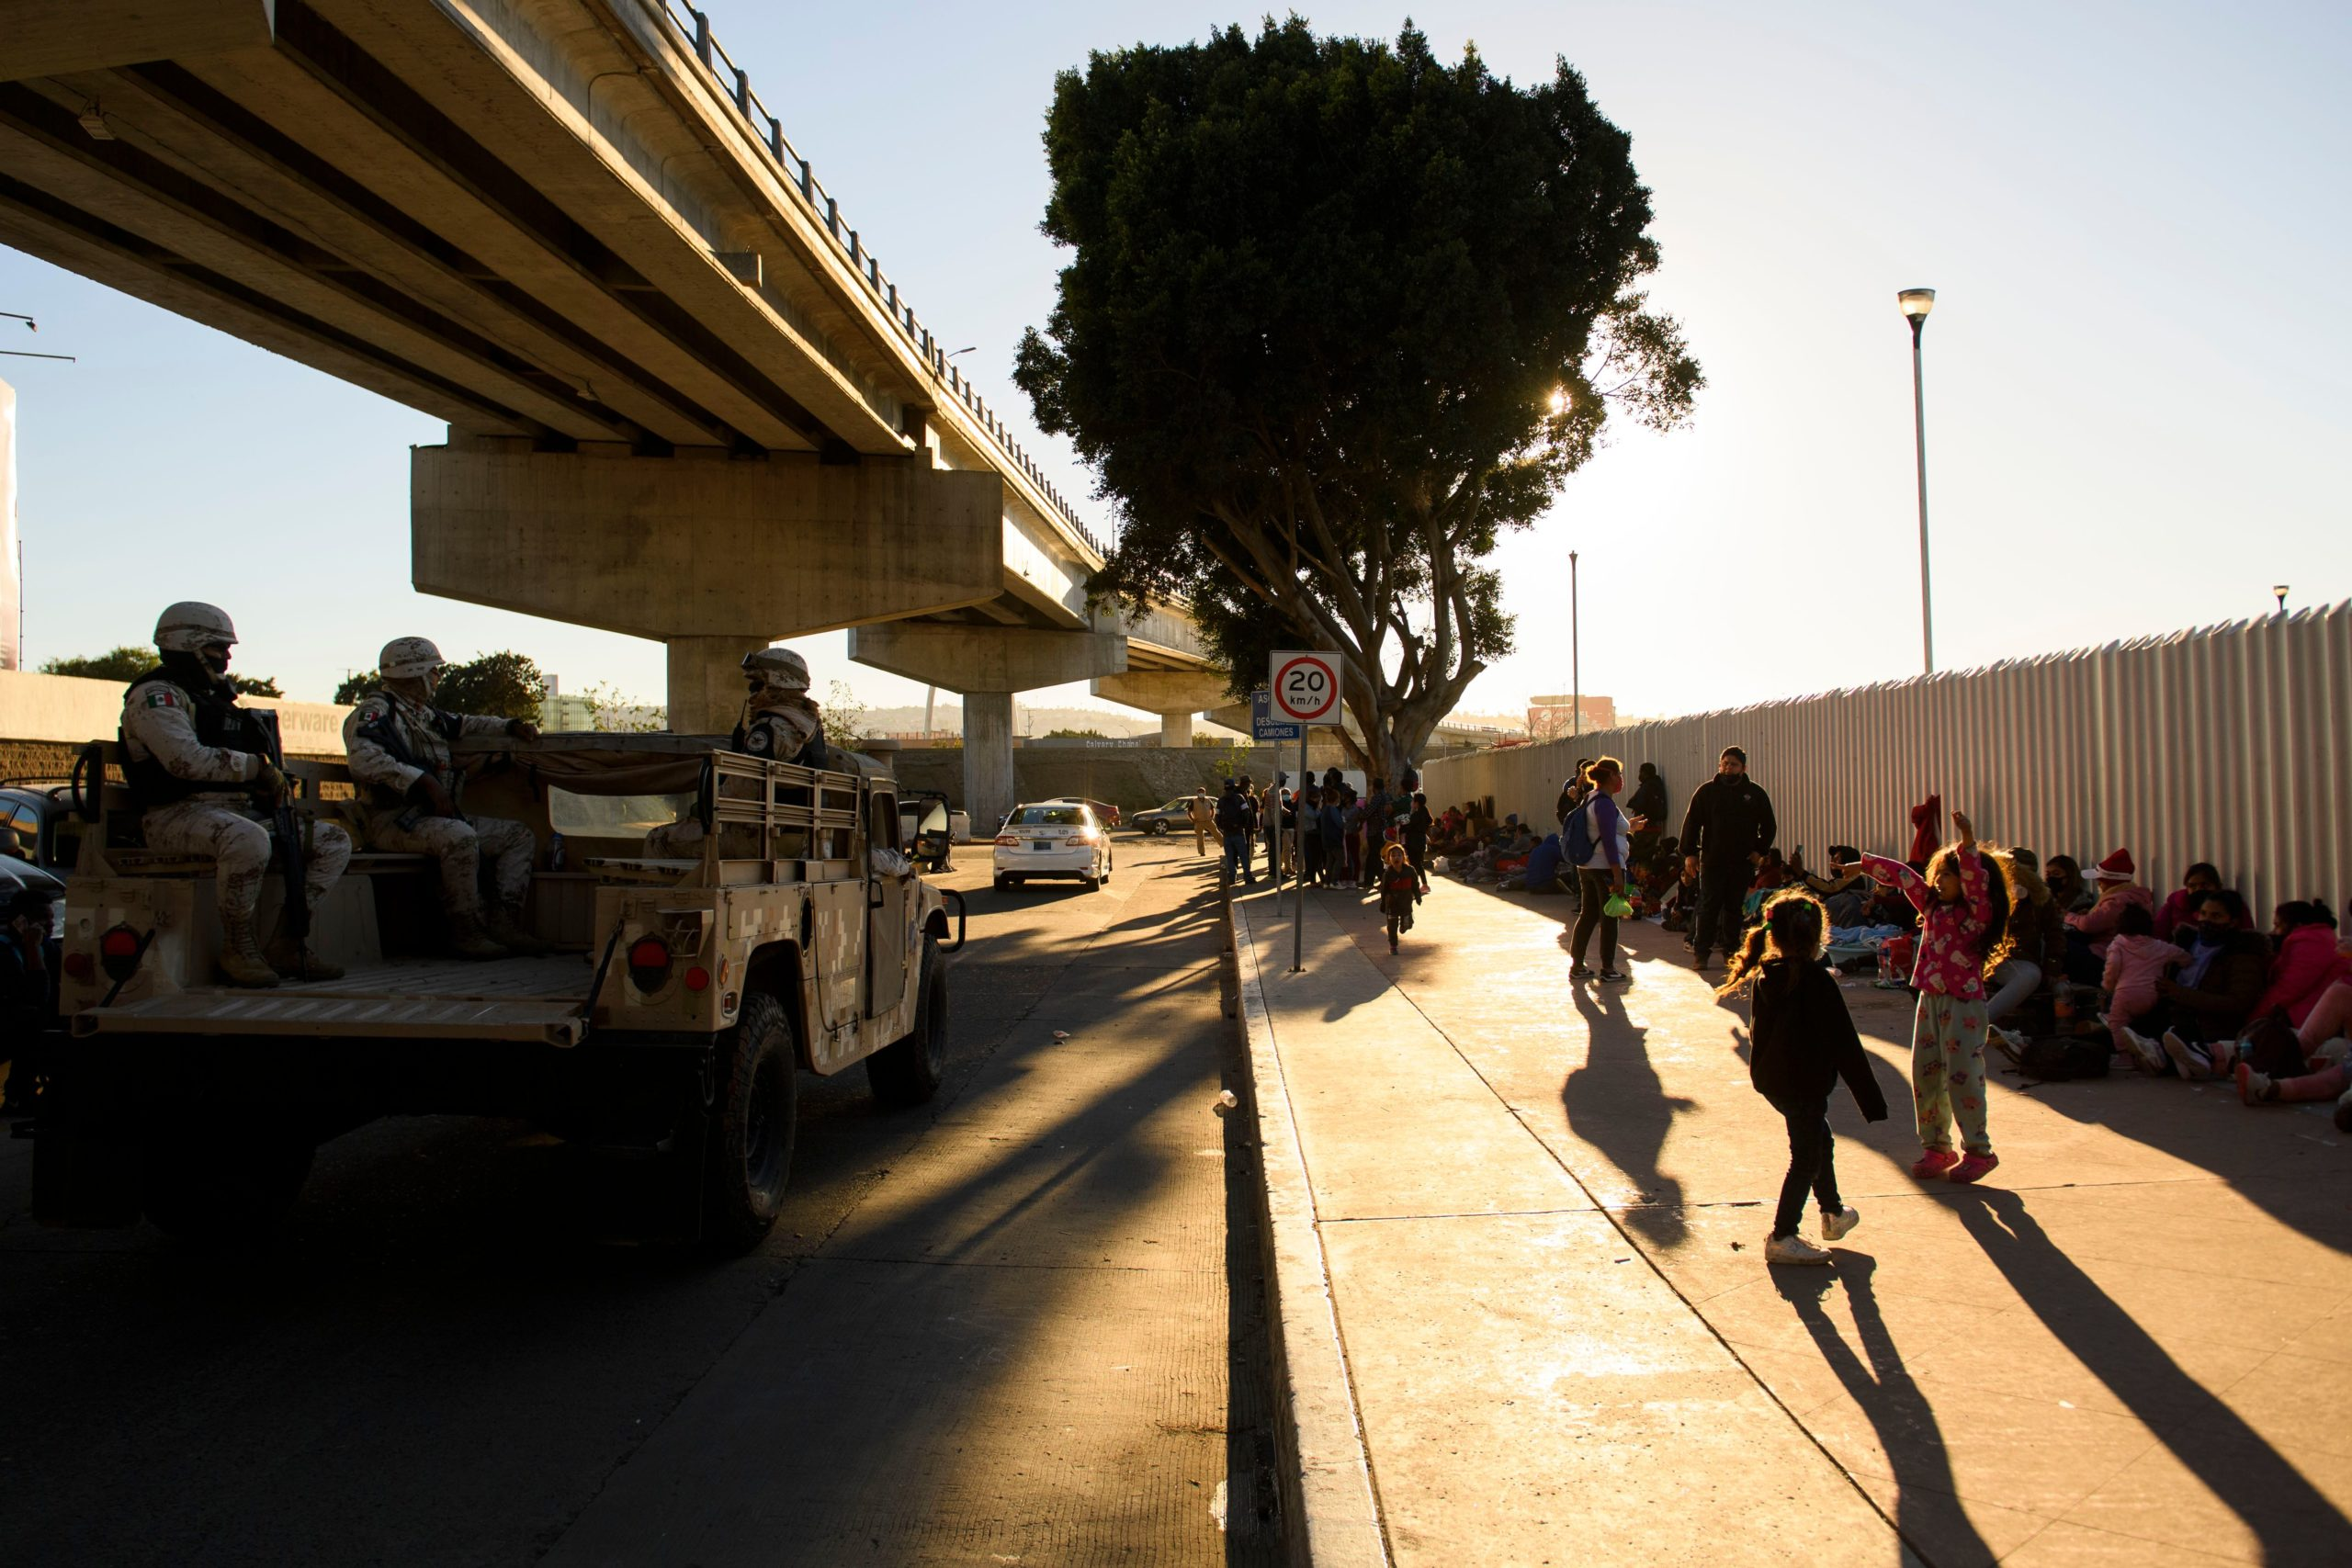 TOPSHOT - A Mexican National Guard vehicle drives past children playing as families of asylum seekers wait outside the El Chaparral border crossing port as they wait to cross into the United States in Tijuana, Baja California state, Mexico on February 19, 2021. - The Biden administration plans to slowly allow 25,000 people with active cases seeking asylum into the US previously enrolled in the Migrant Protection Protocols program, known as